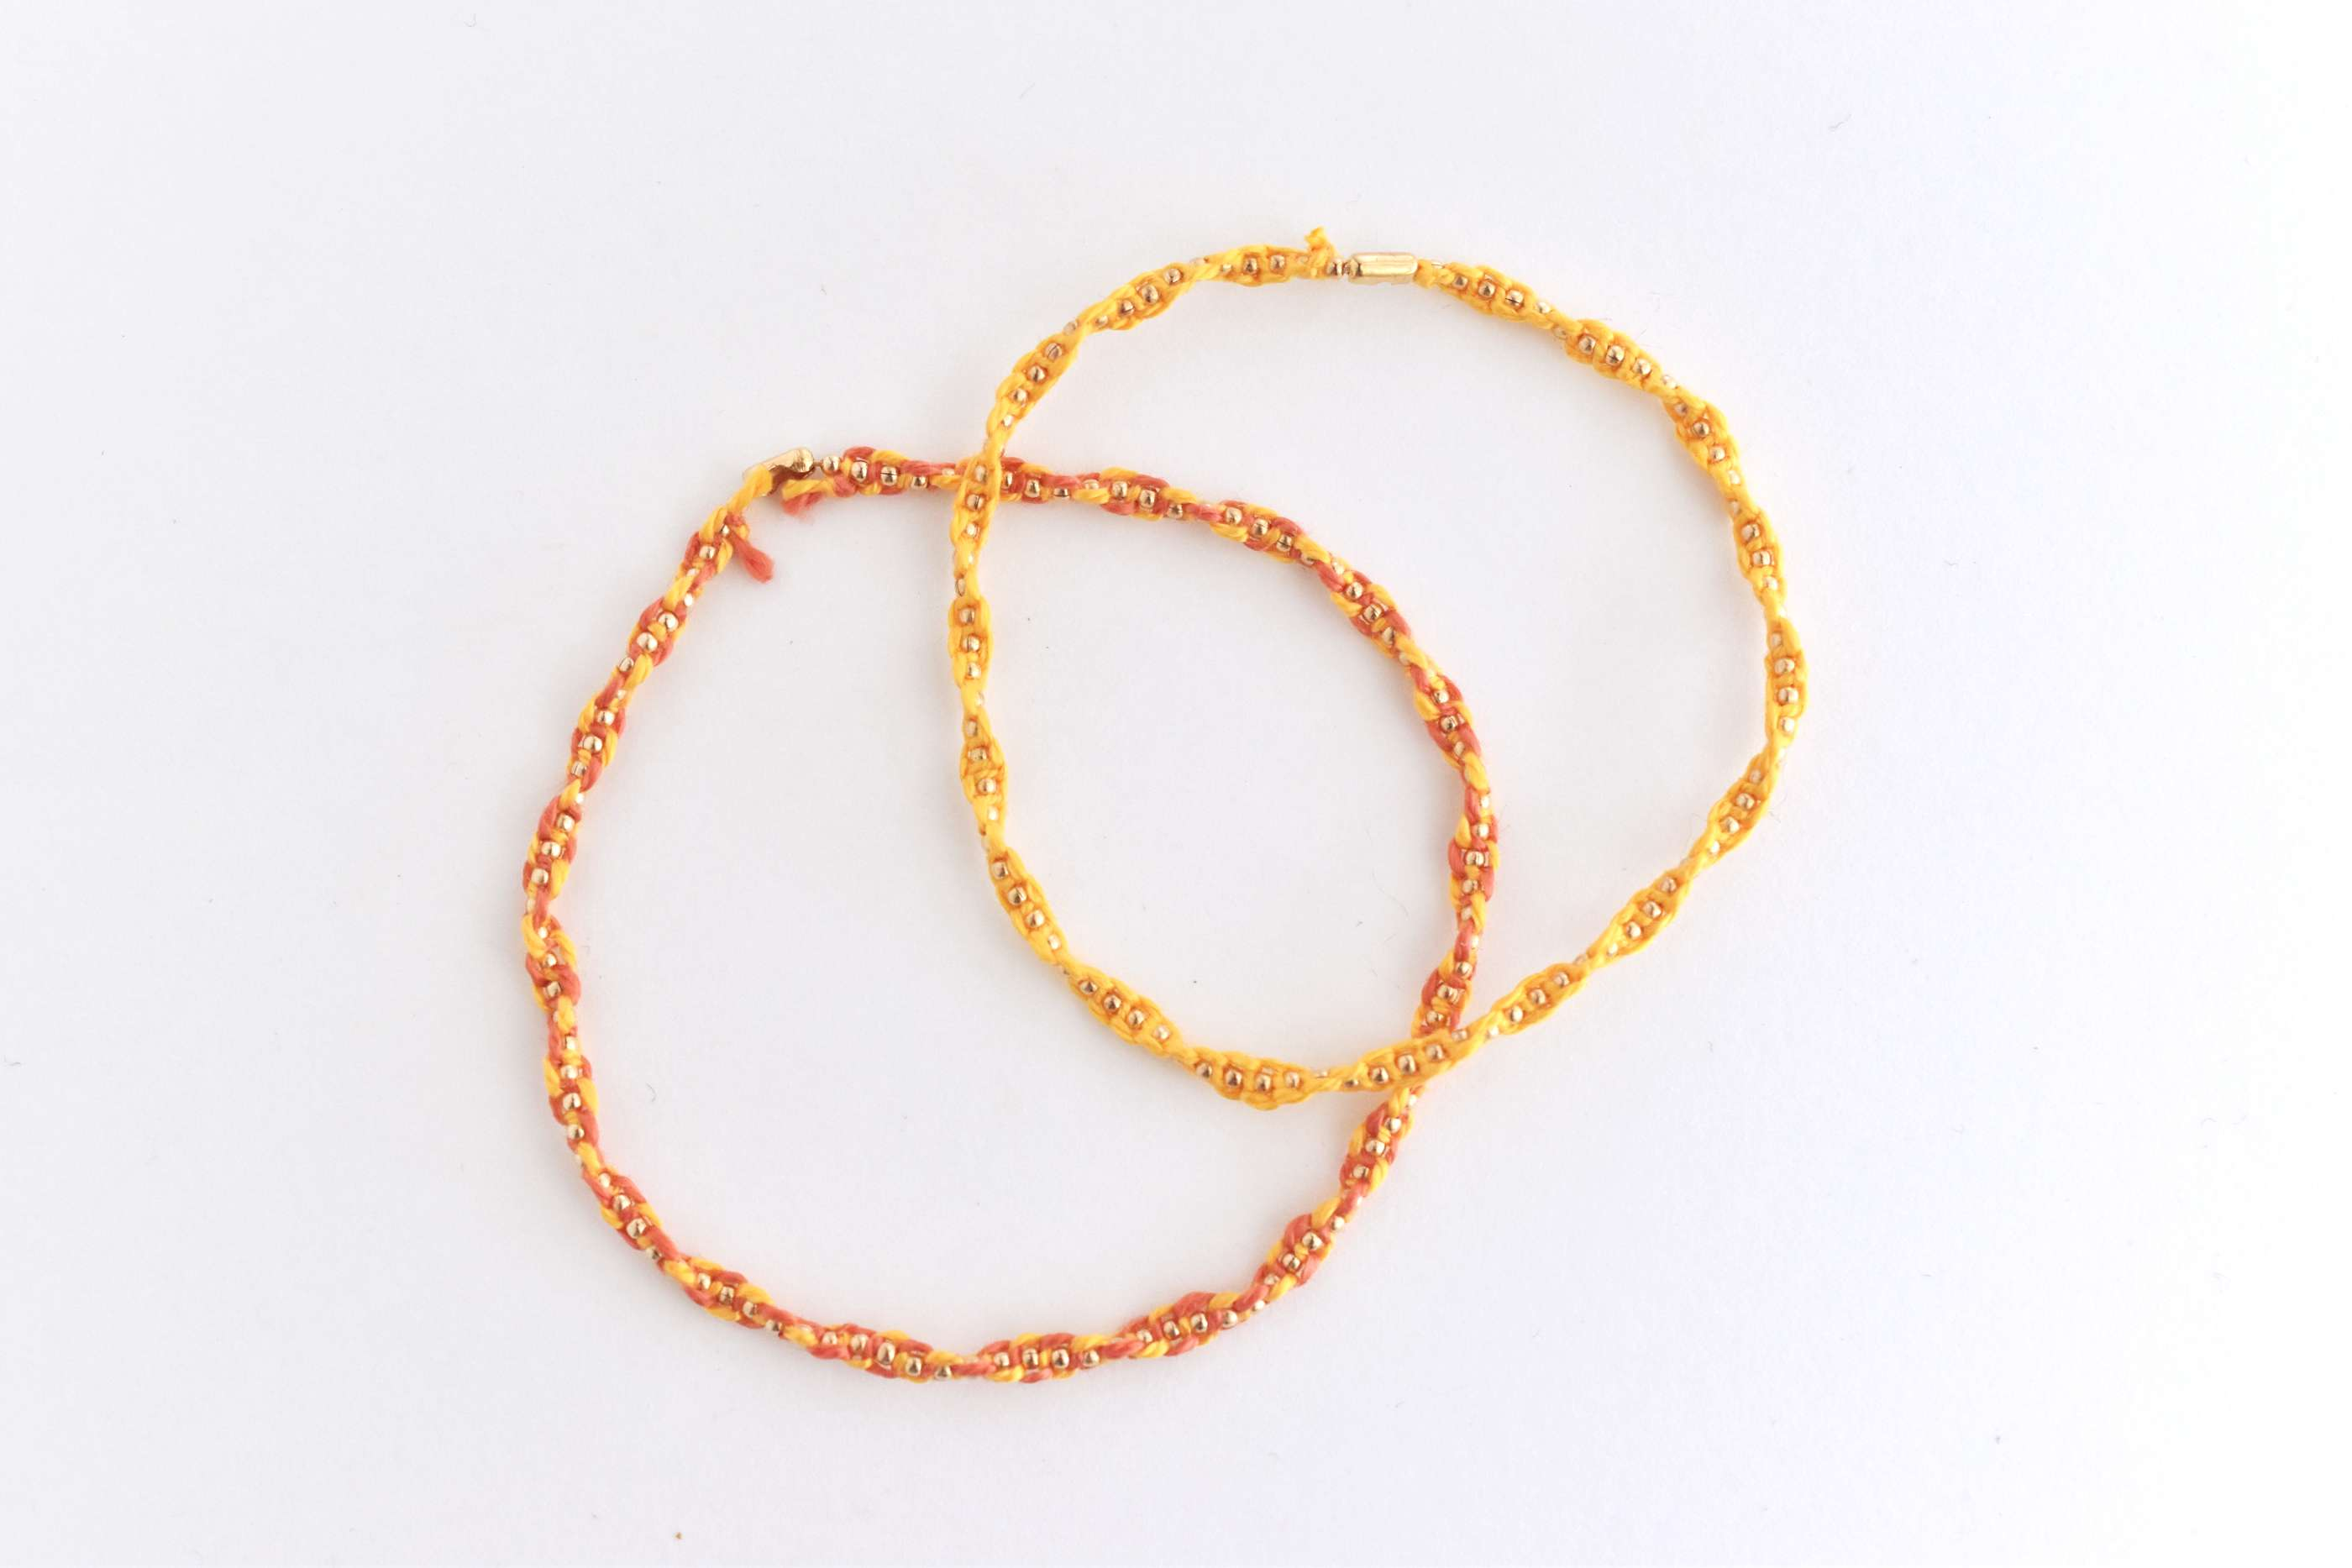 Knotted Chain Friendship Bracelets